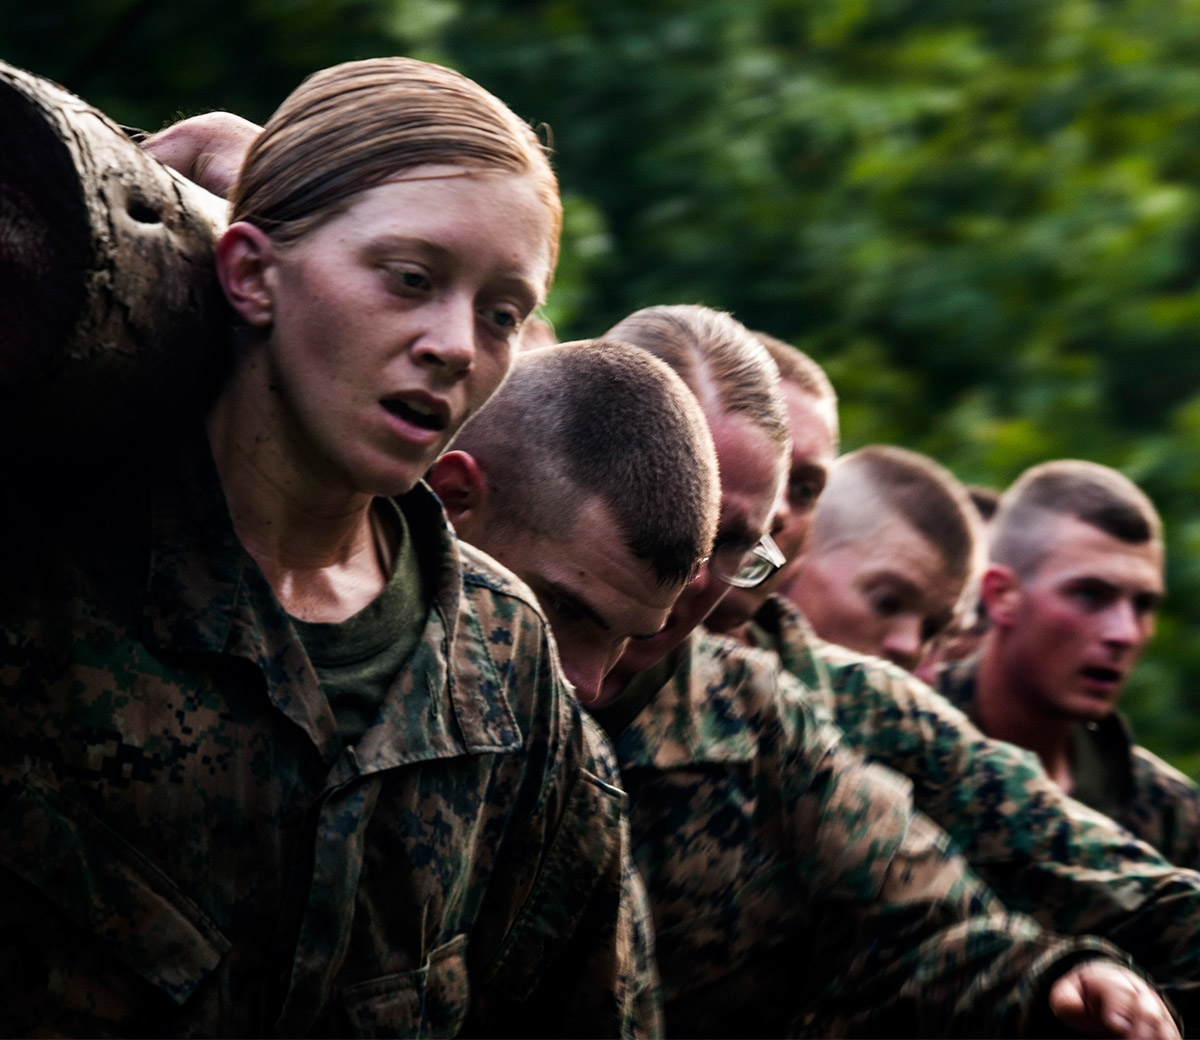 Marine Officer training tests leadership ability.